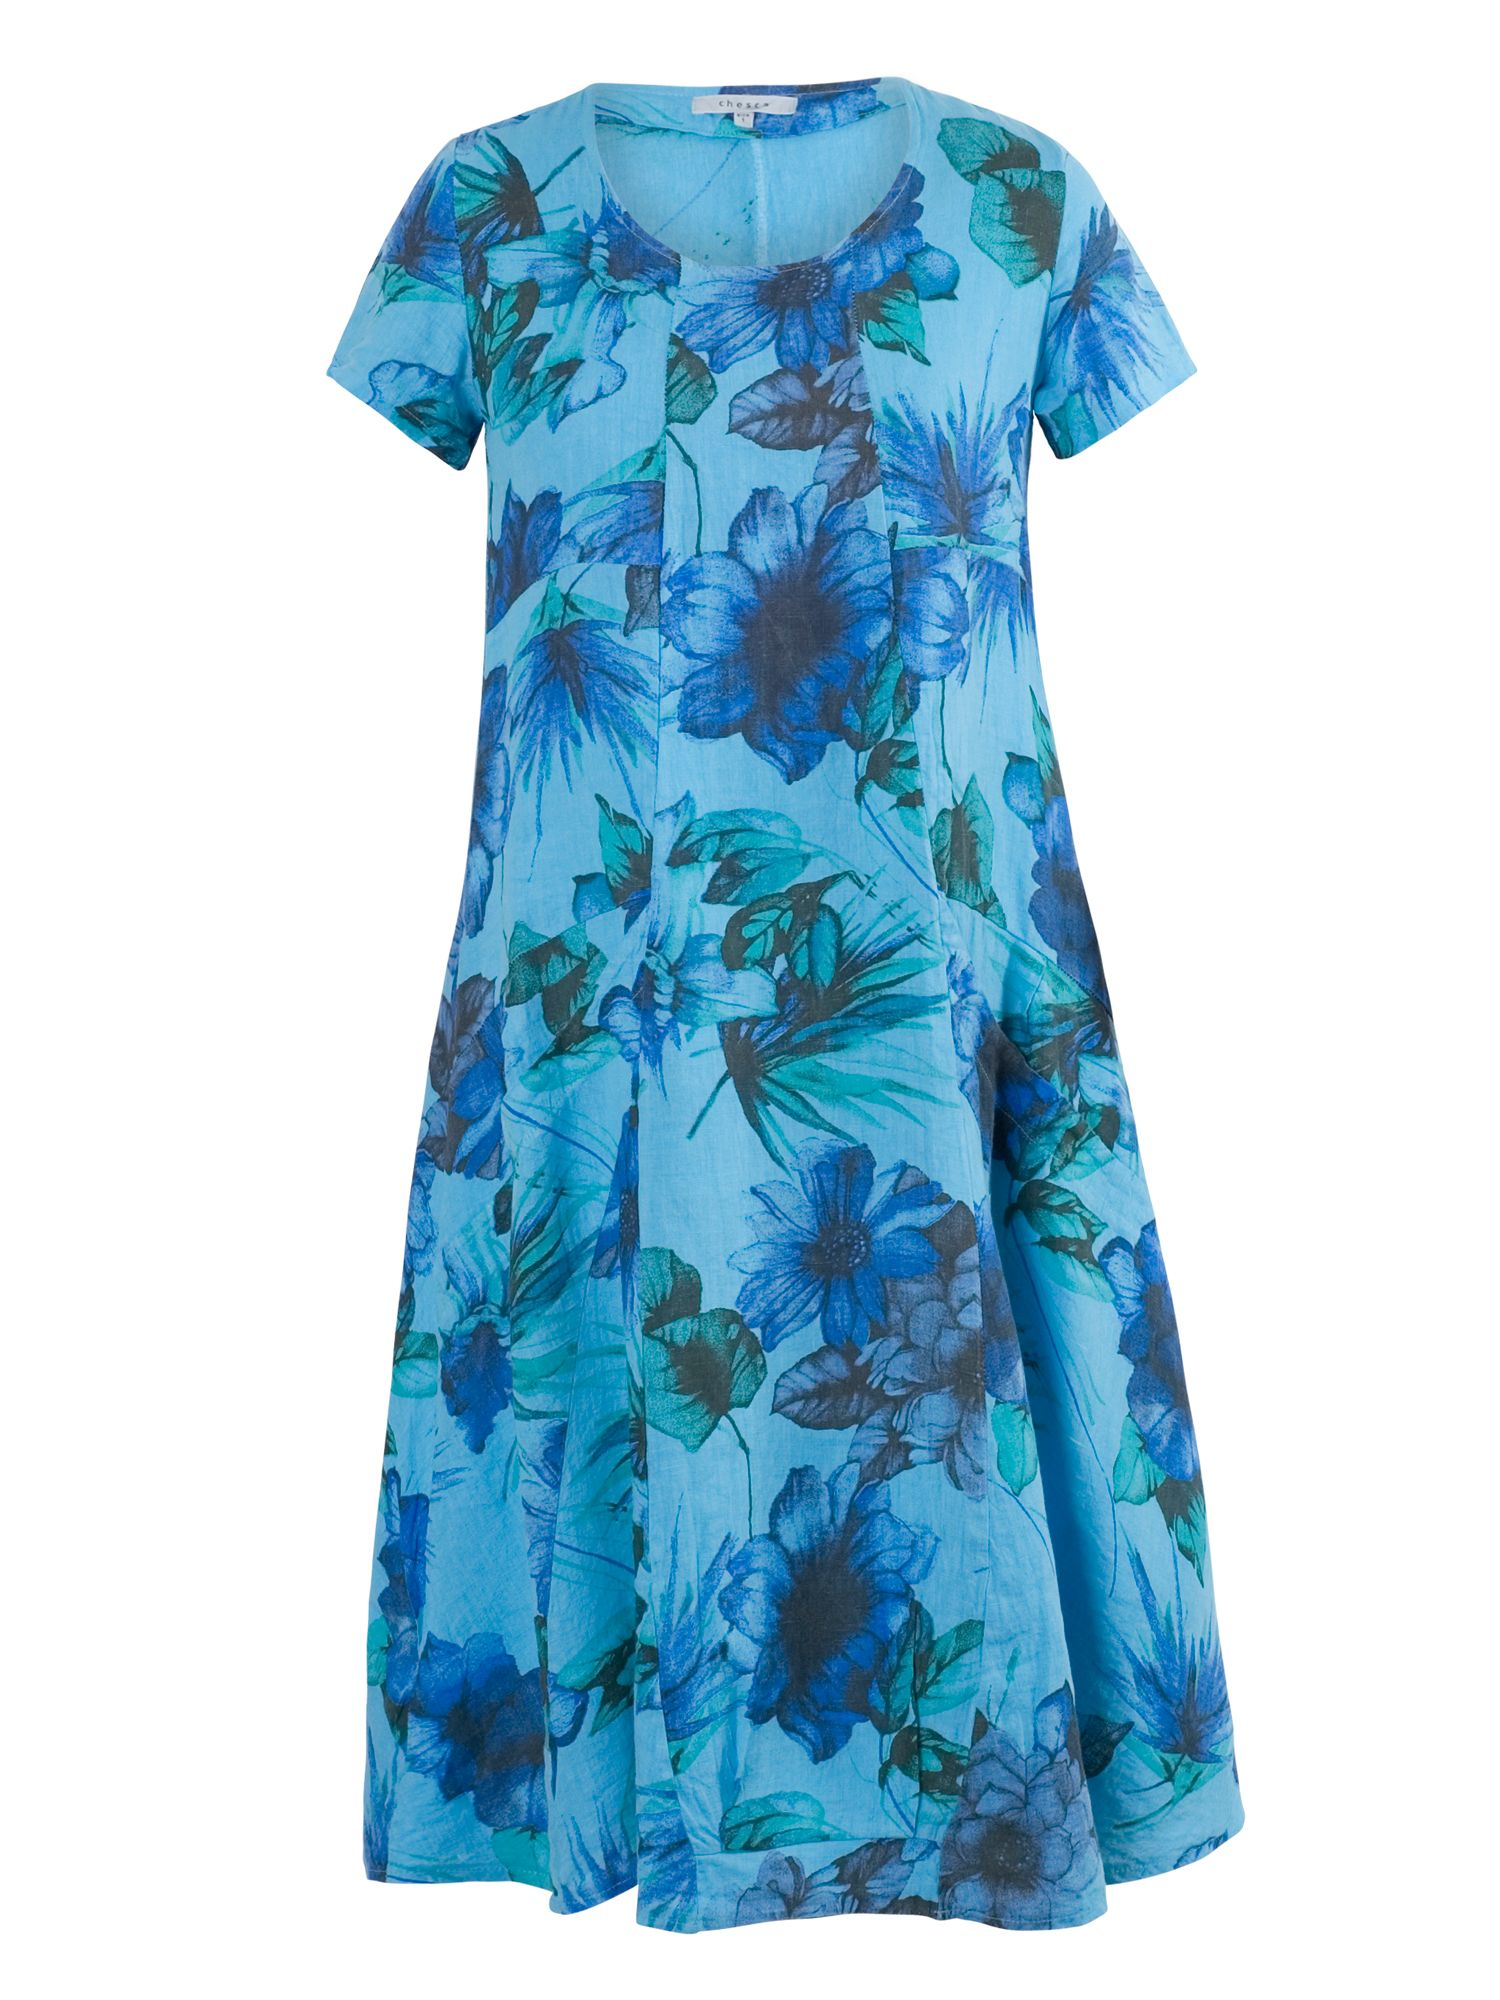 Chesca Plus Size Floral Print Linen Dress, Aqua